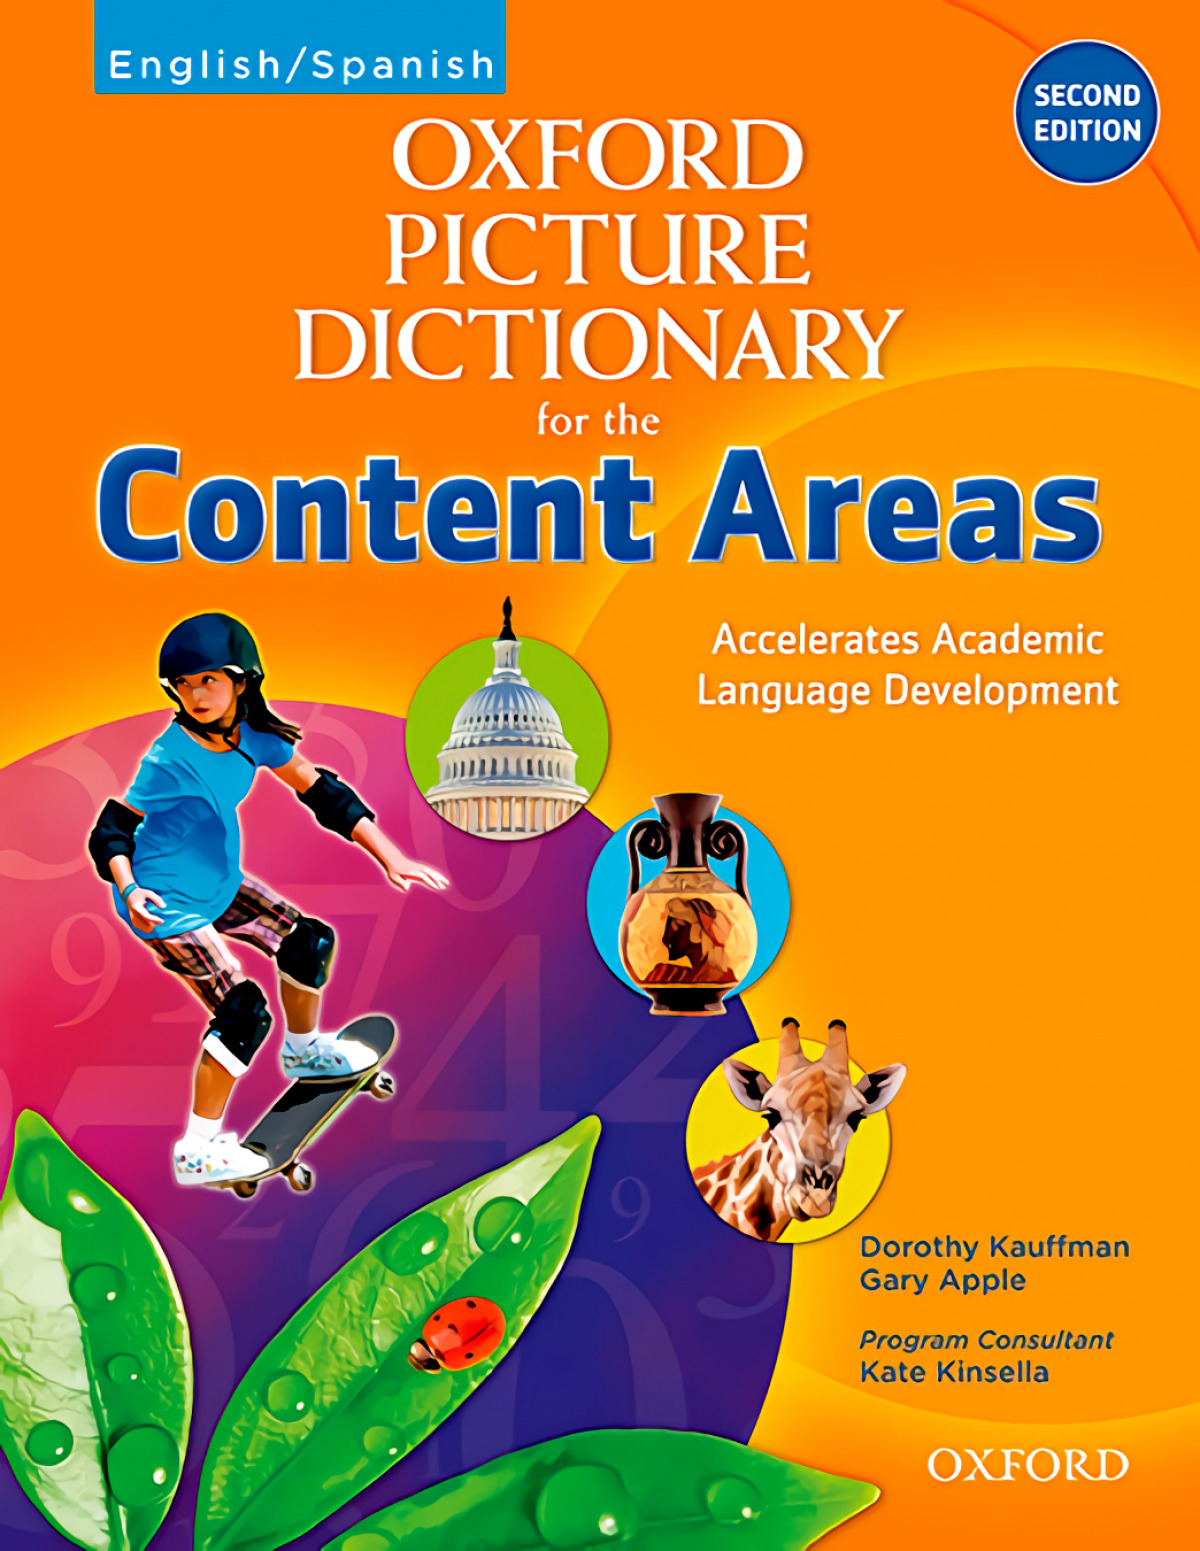 The Oxford Picture Dictionary for the Content Areas. Bilingu 9780194525022